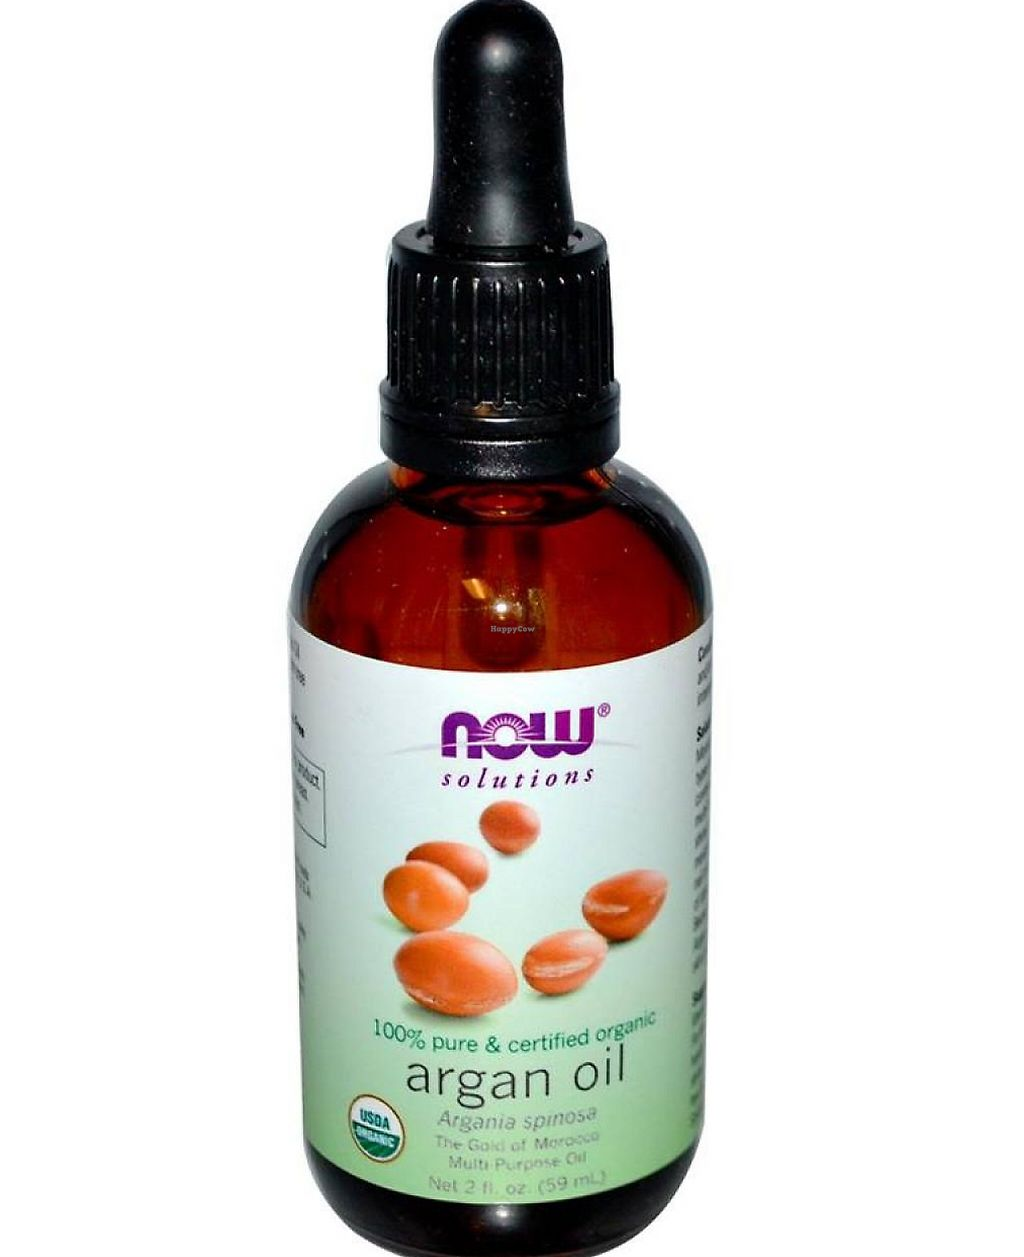 "Photo of African Naturals  by <a href=""/members/profile/OgoniMan"">OgoniMan</a> <br/>Moroccan argan oil is Cold pressed, 100% pure natural and organic. It is one of the rarest oils in the world. Argan oil has been traditionally used as treatment for skin diseases, hair growth, face renewal, hair loss and more <br/> March 21, 2015  - <a href='/contact/abuse/image/56659/207357'>Report</a>"